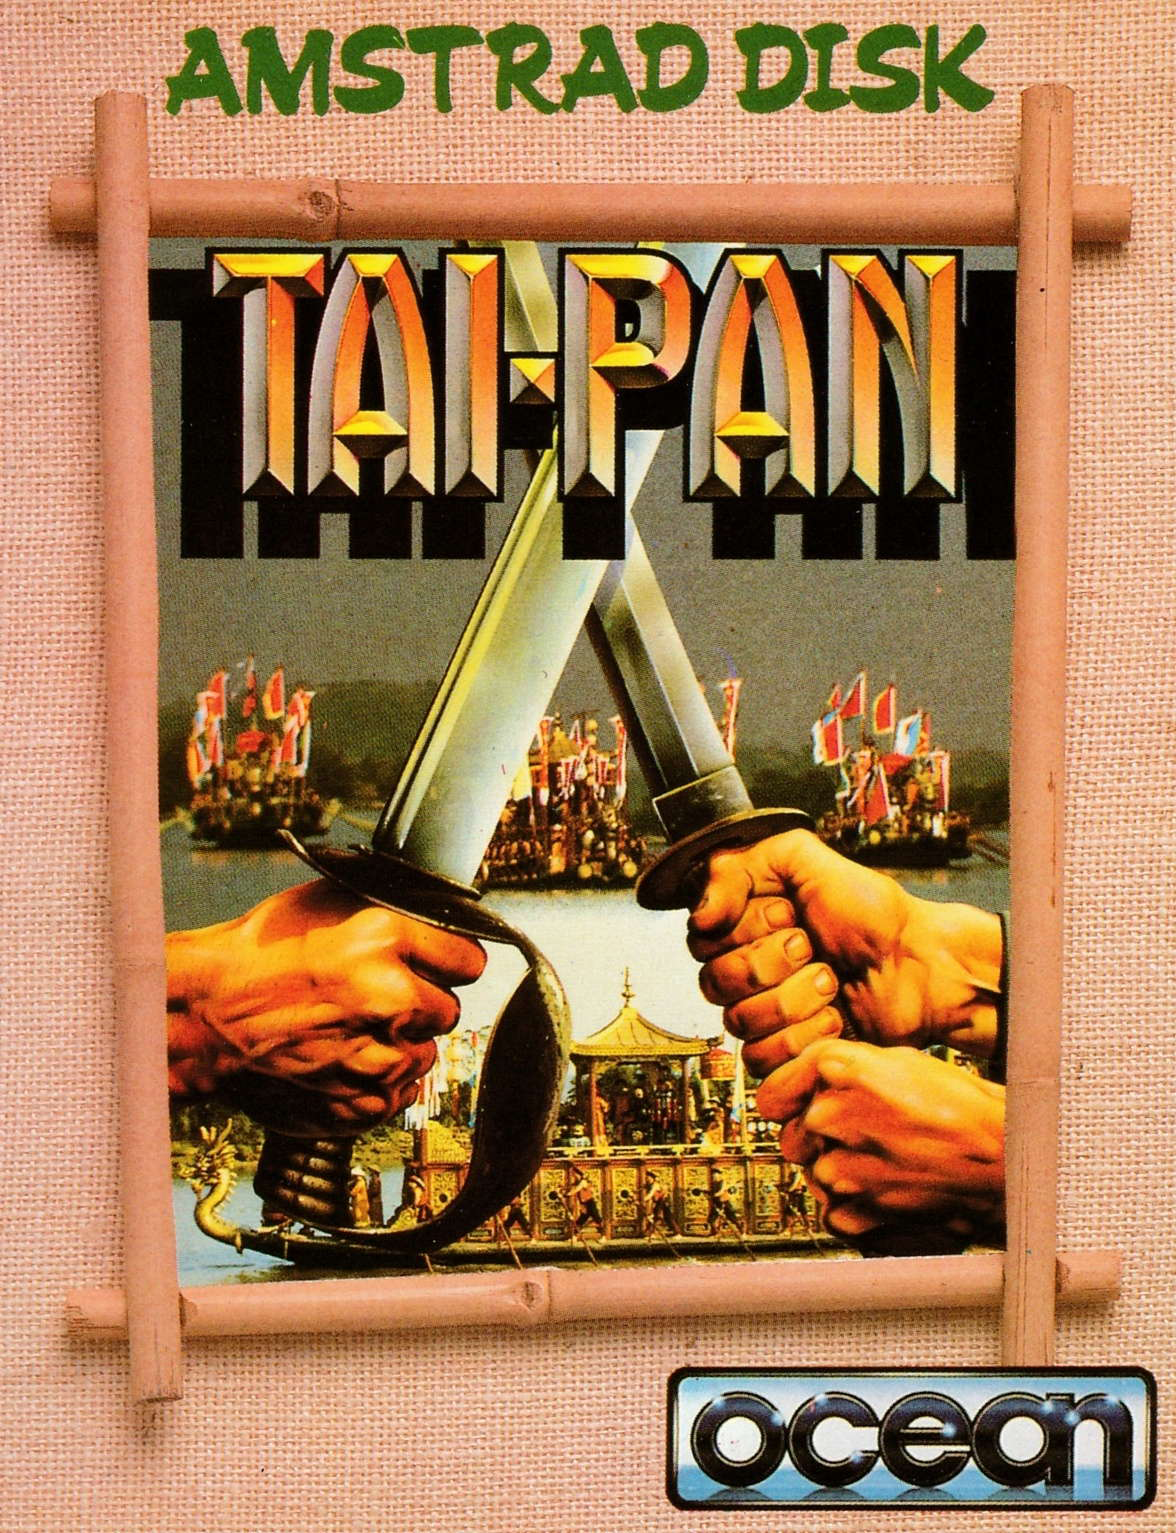 cover of the Amstrad CPC game Tai-Pan  by GameBase CPC